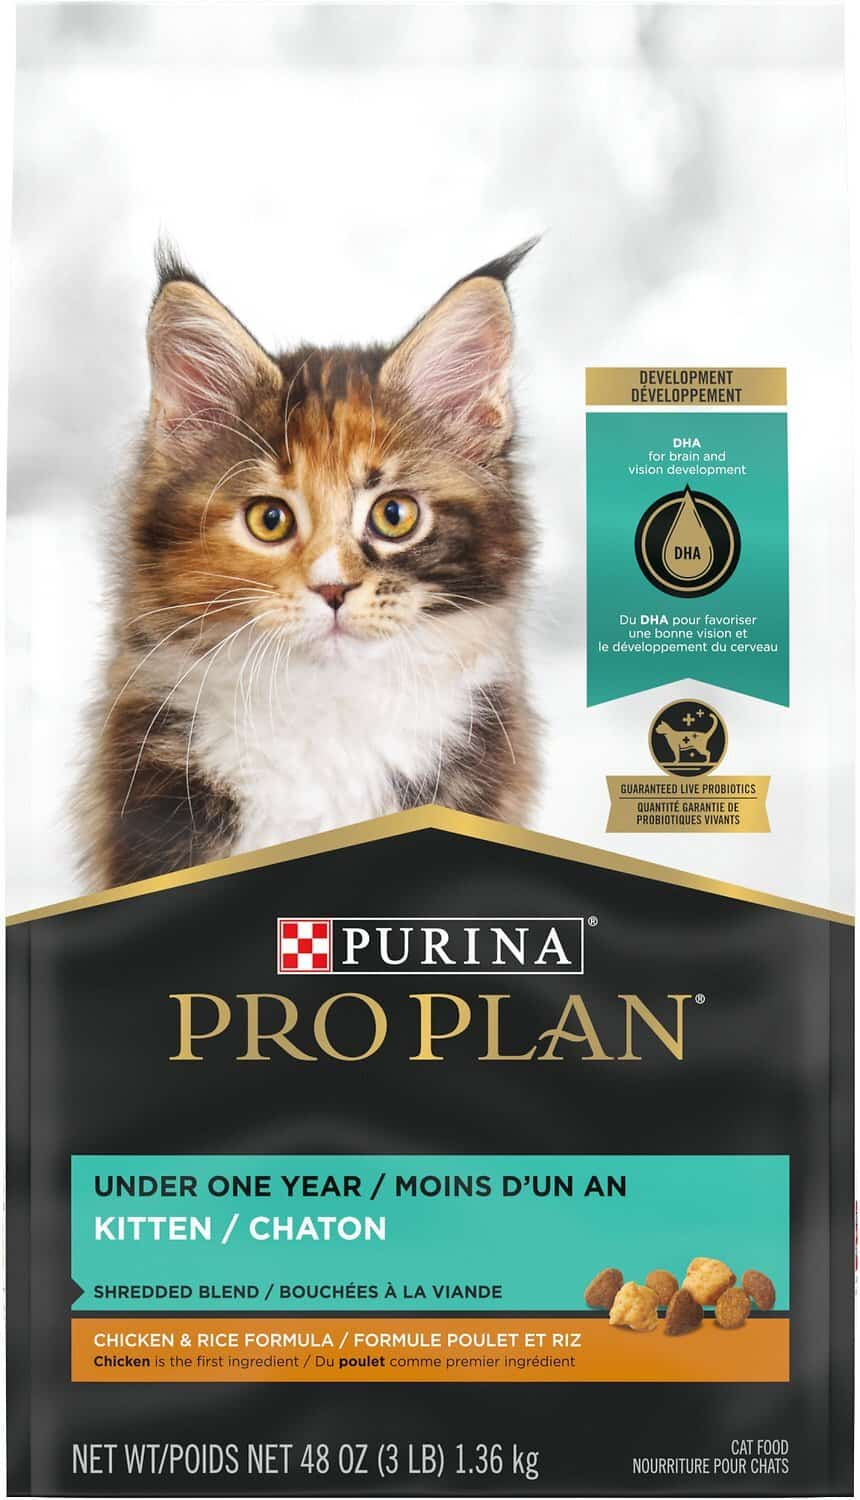 Purina Pro Plan Cat Food Review [year]: Advanced Nutrition for Cats 6